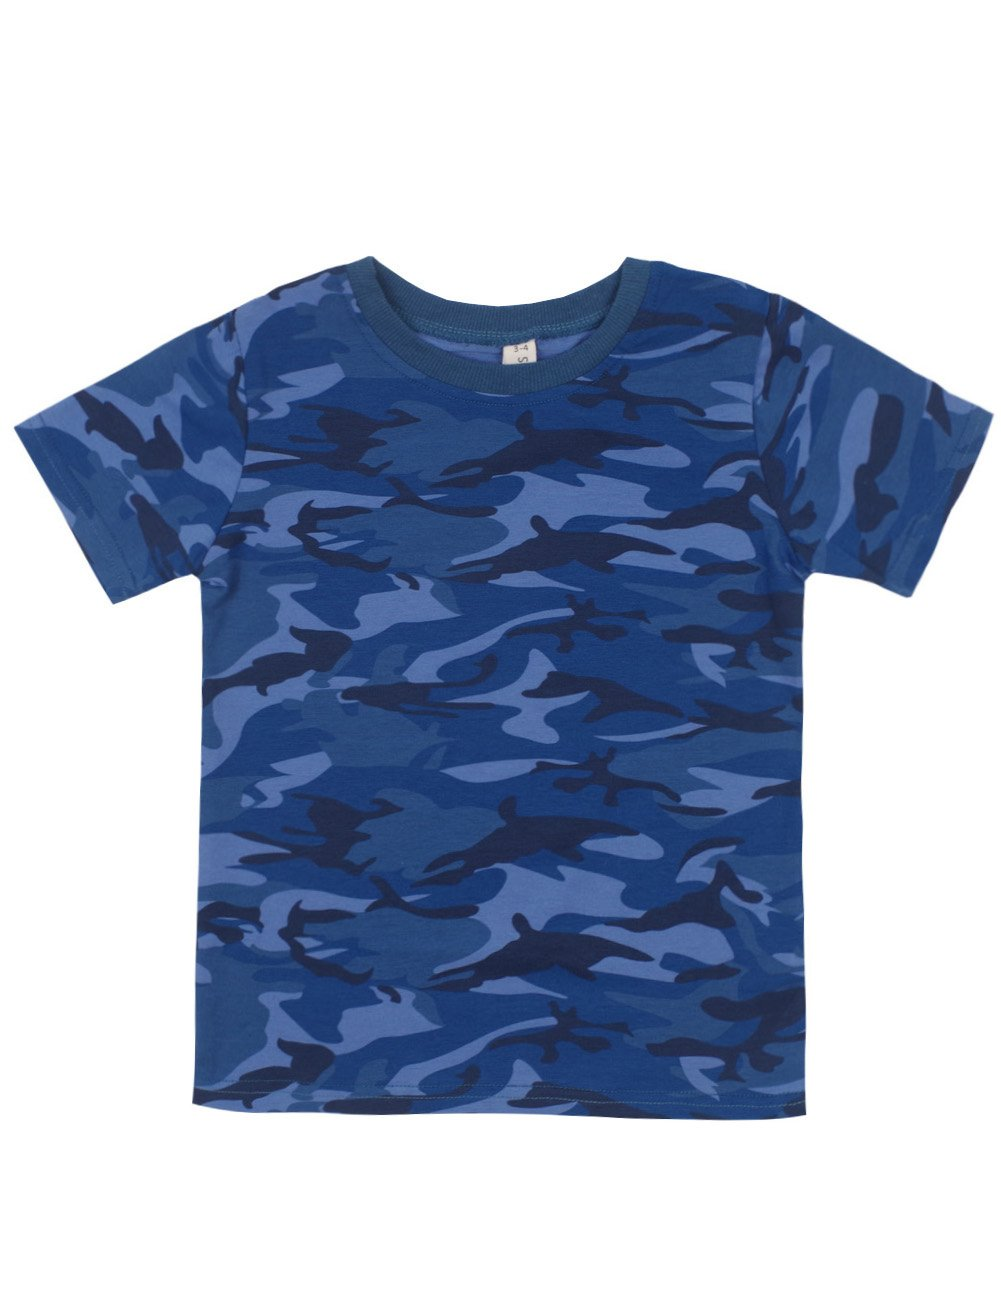 Spring&Gege Boys Summer Cotton Short Sleeve Camouflage T-Shirt Size 9-10 Years Camo/Navy Blue